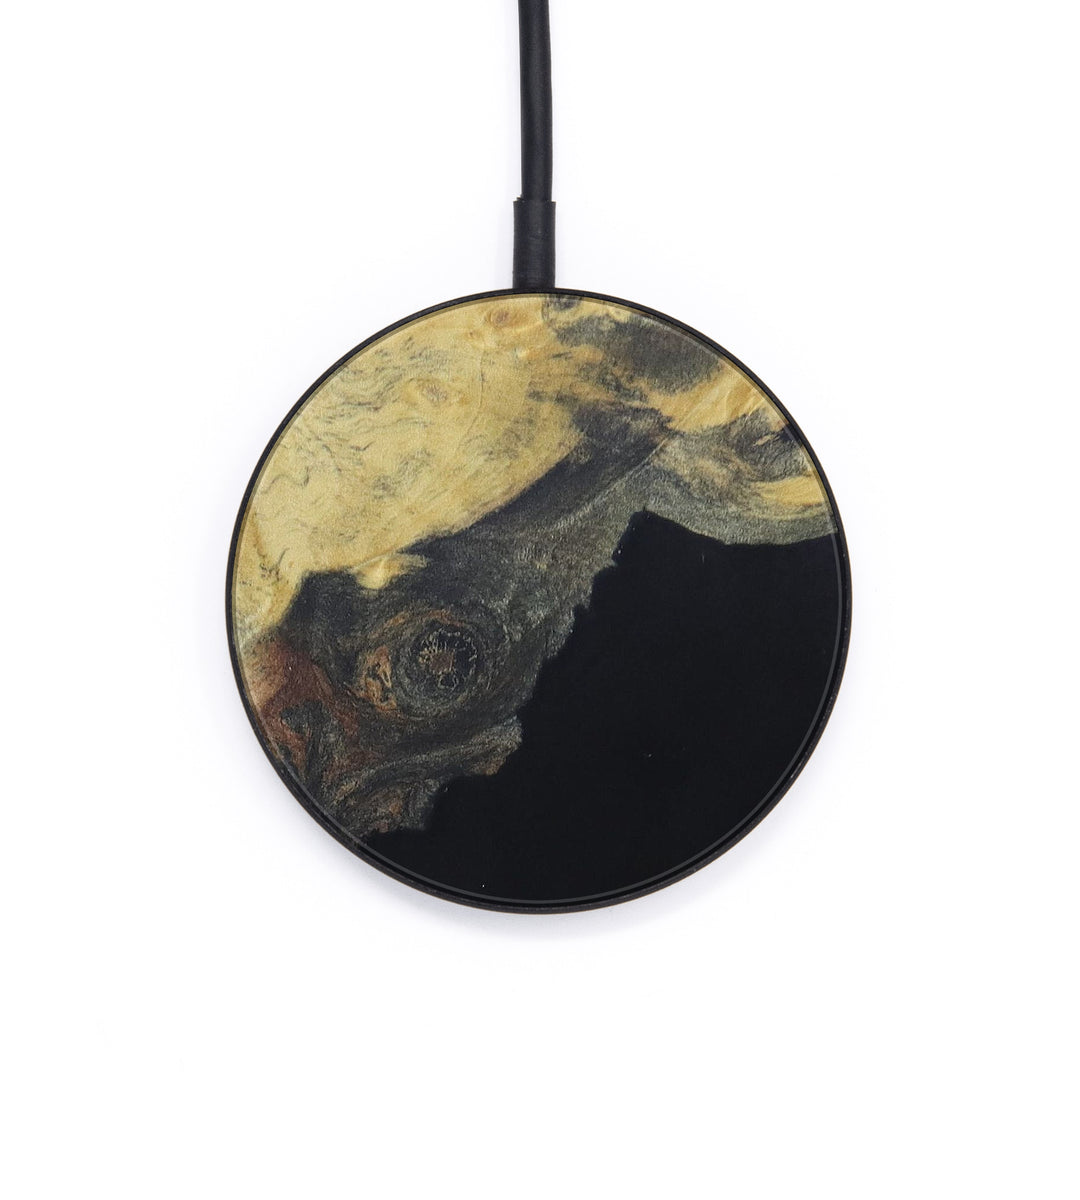 Circle Wood+Resin Wireless Charger - Flossie (Pure Black, 400382)